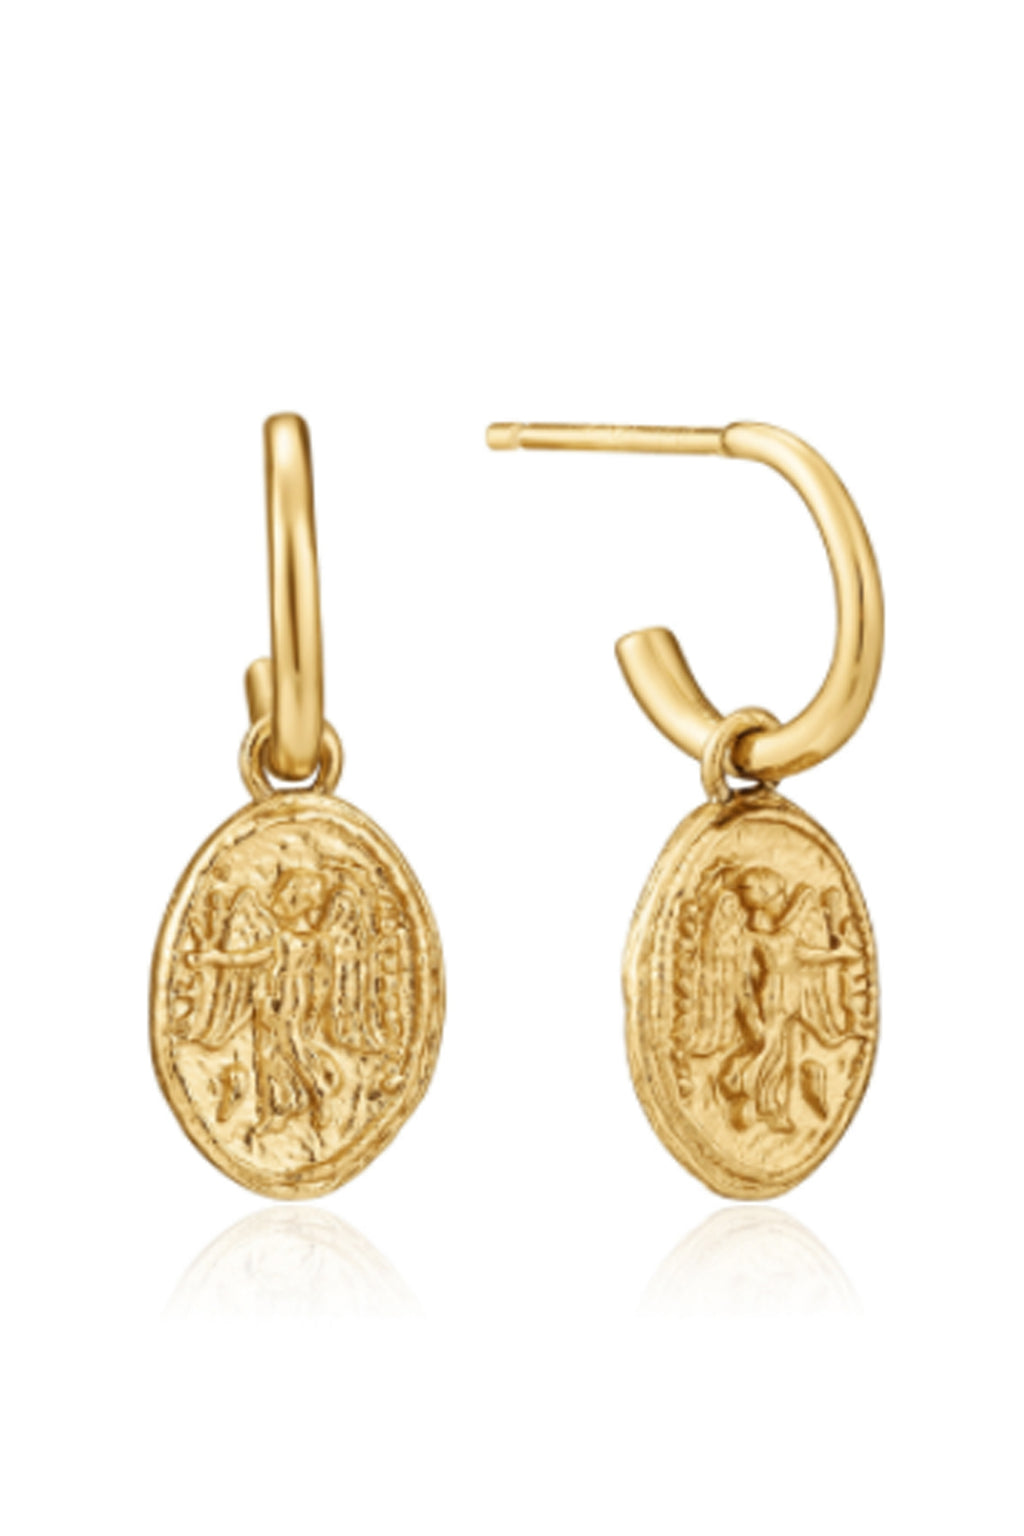 Ania Haie Nika Mini Hoop Earrings - The Mercantile London